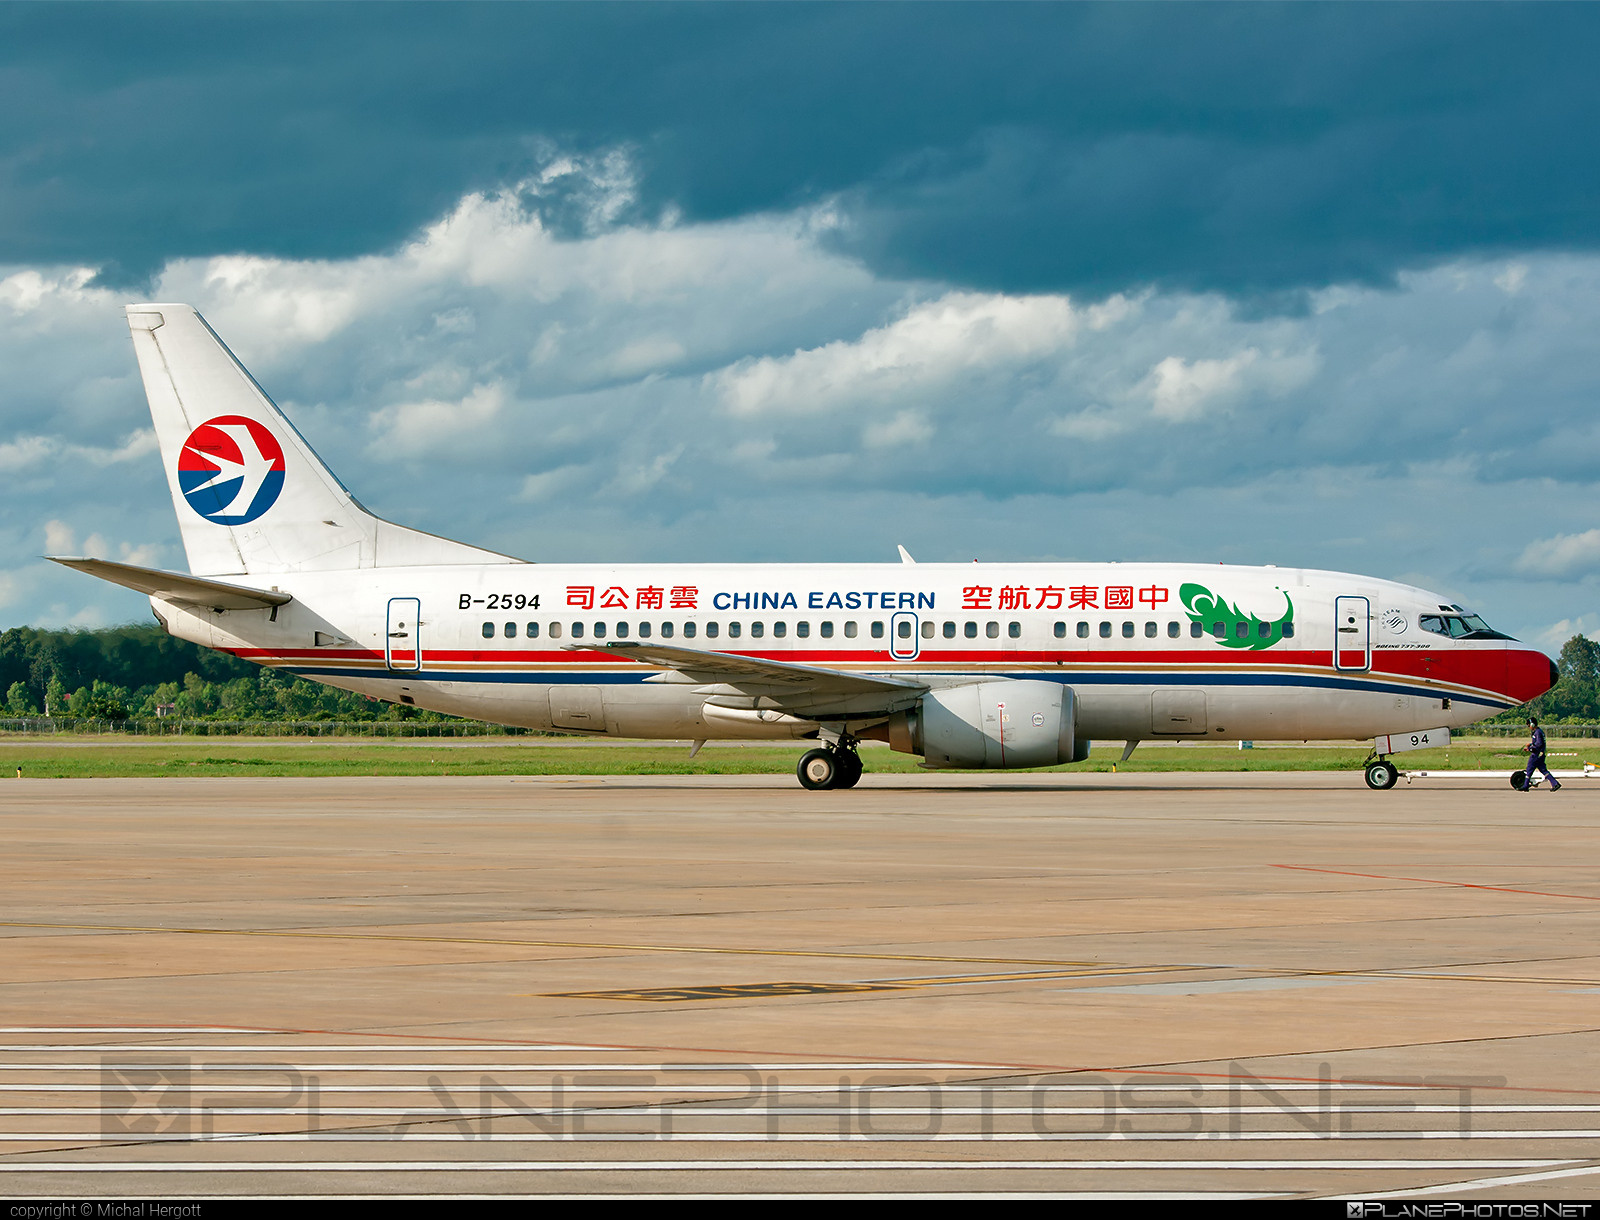 Boeing 737-300 - B-2594 operated by China Eastern Airlines #b737 #boeing #boeing737 #chinaeastern #chinaeasternairlines